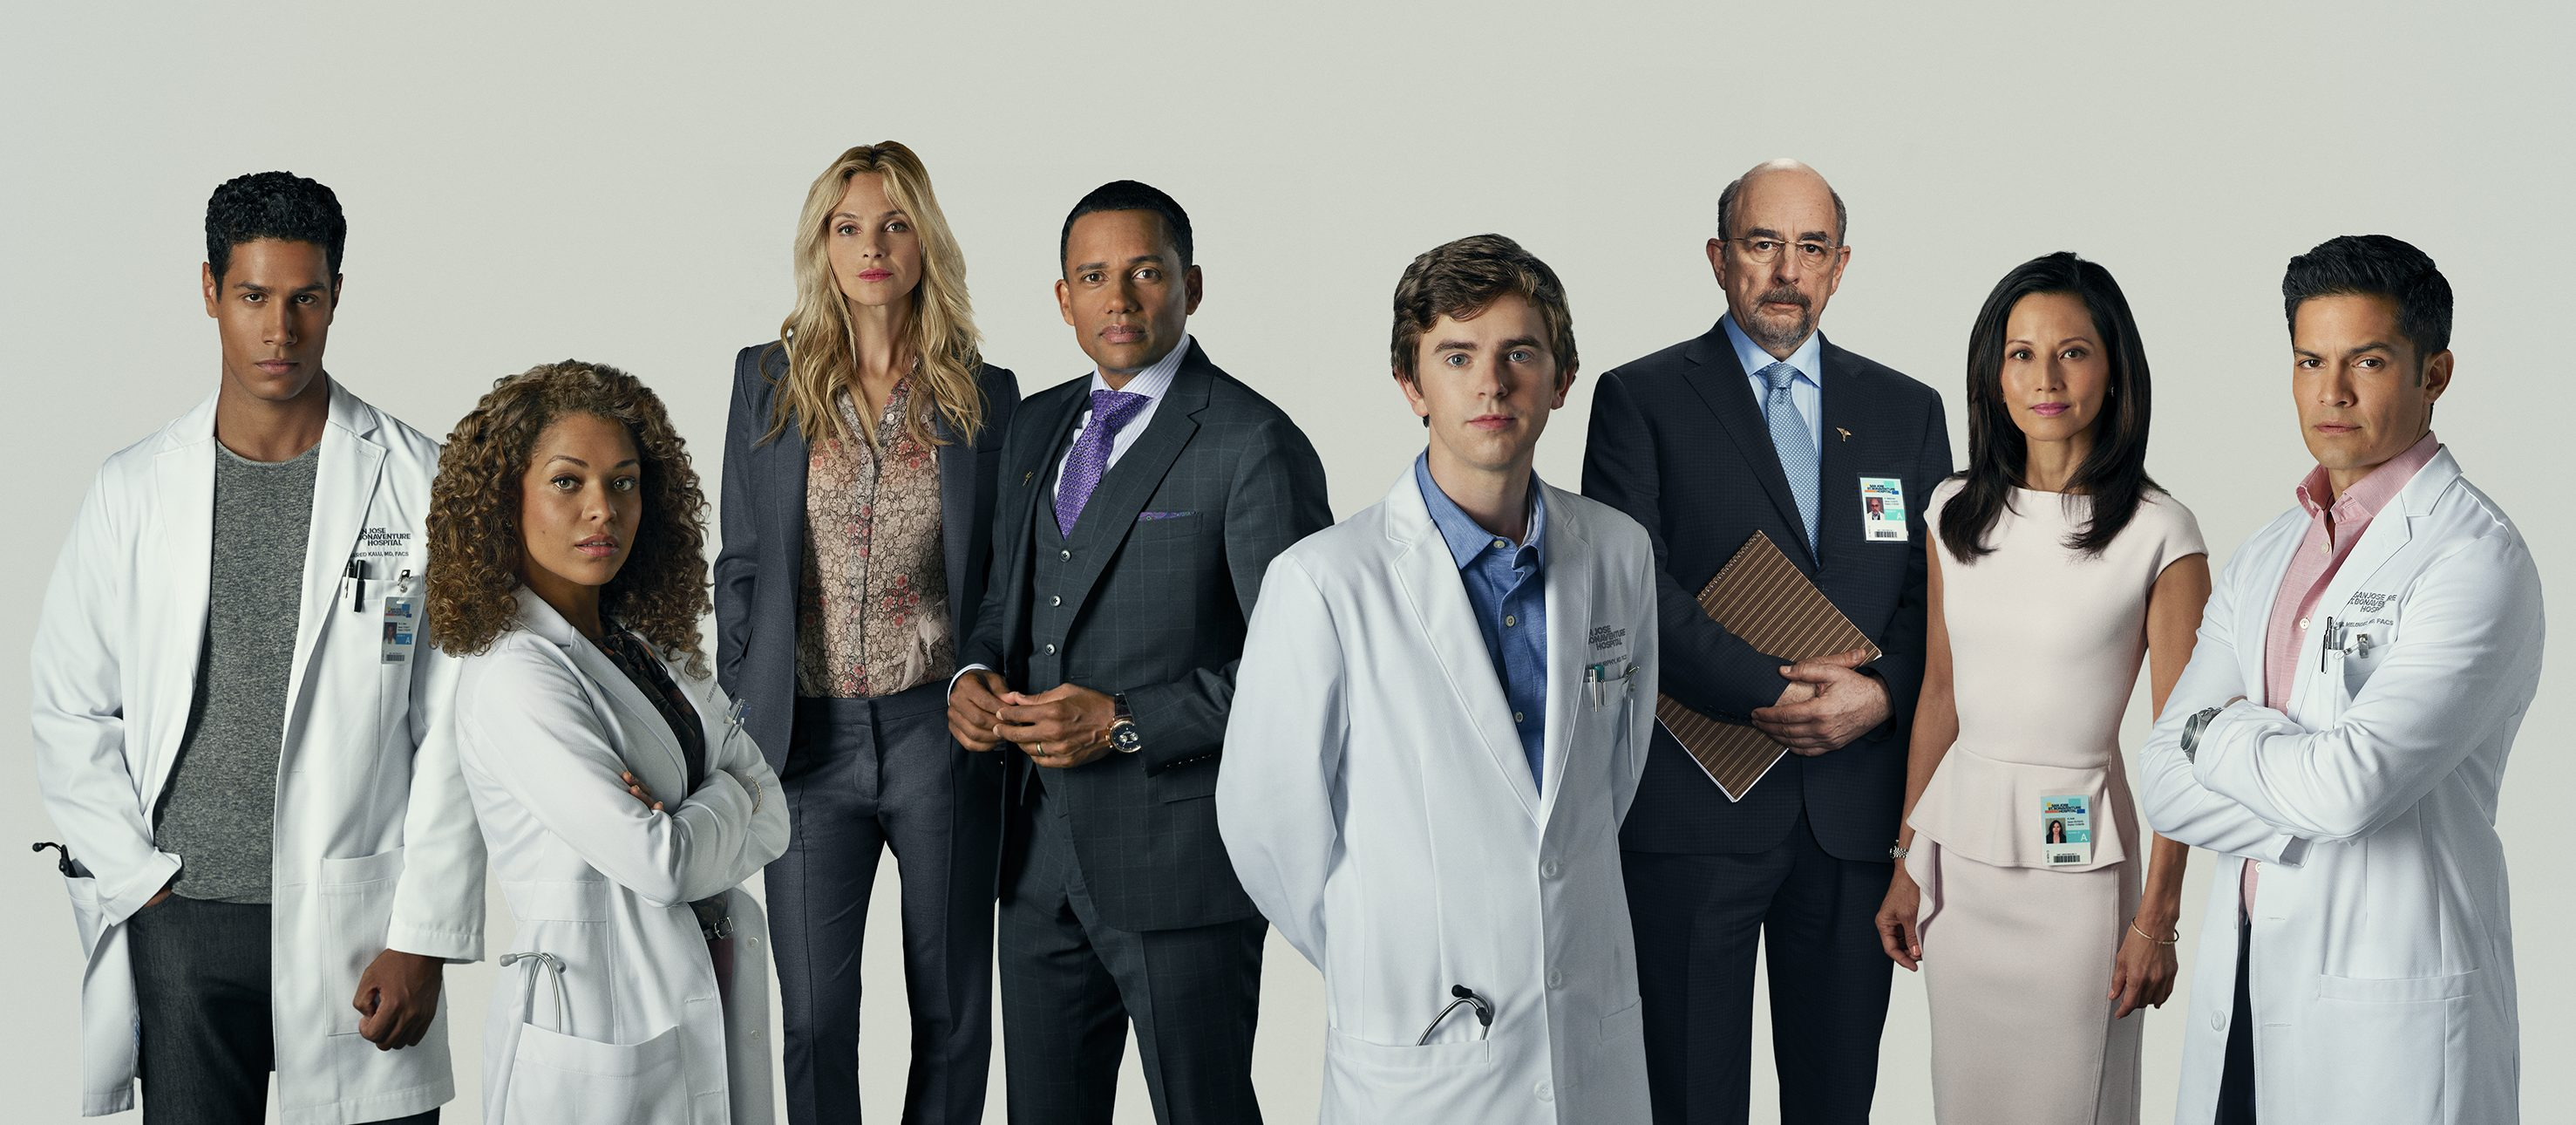 The Good Doctor Is Great!